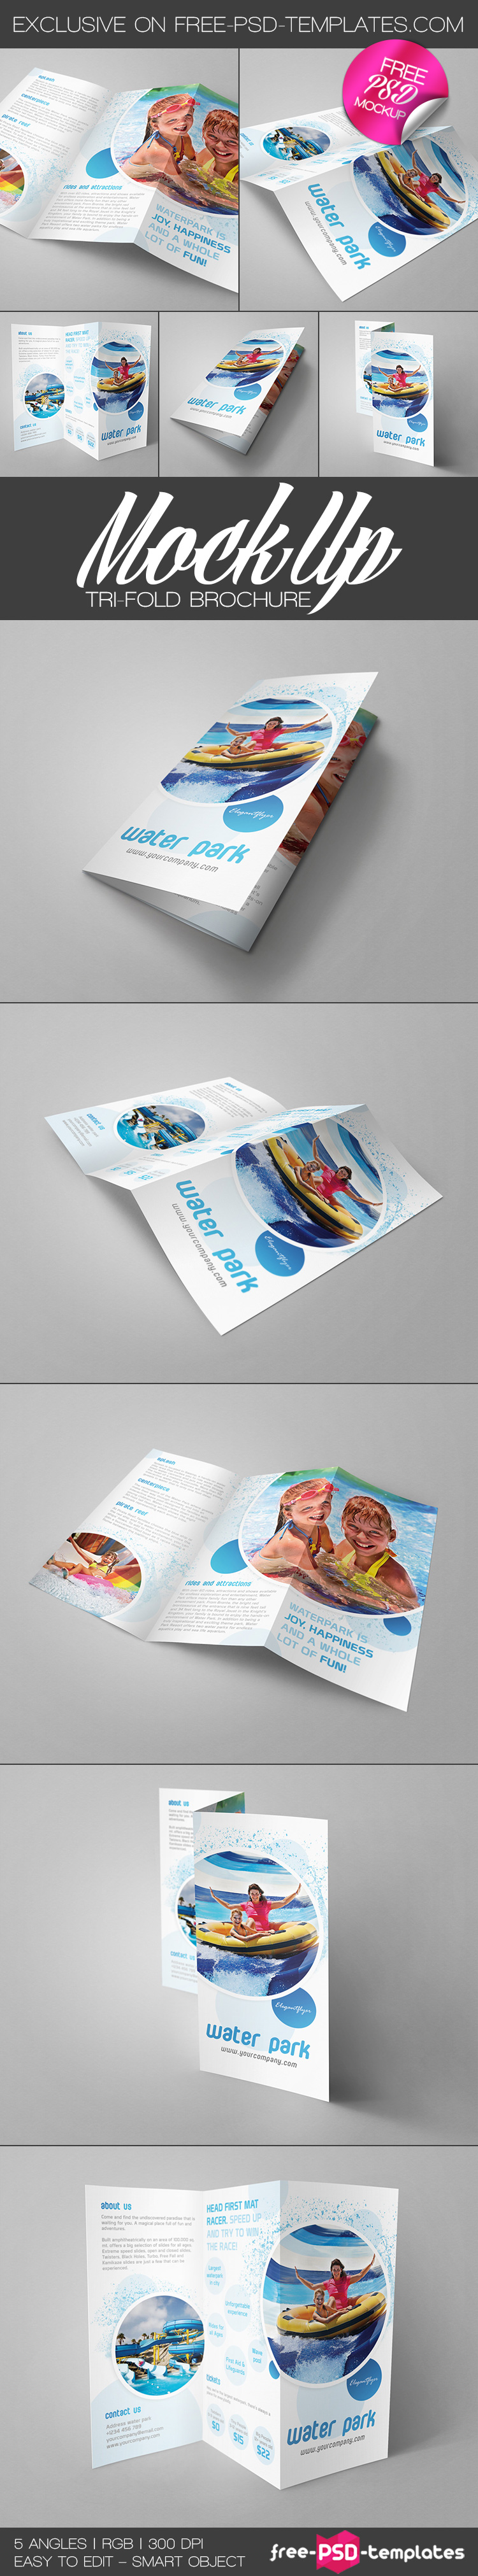 Mockup trifold brochure free mockup template in psd for Psd brochure templates free download